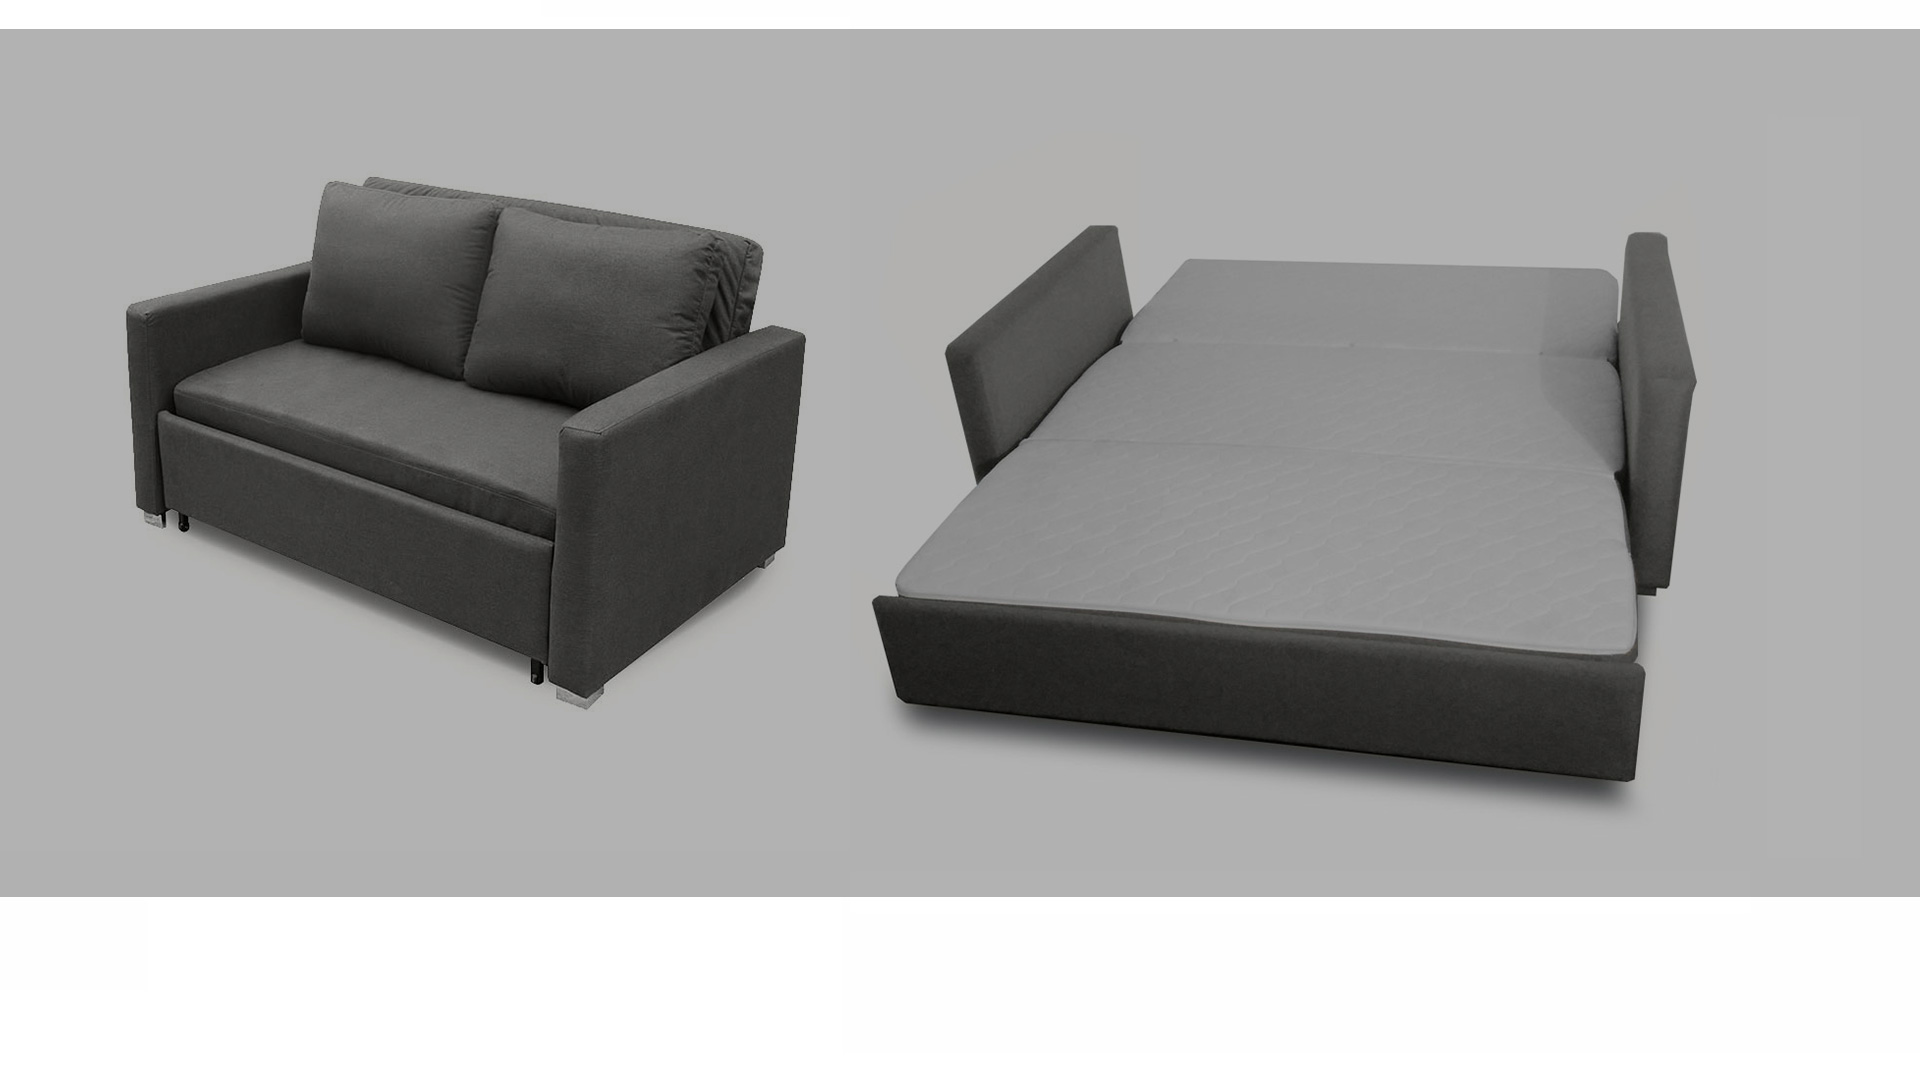 Space Saving Sofa Beds Made For Comfort Expand Furniture